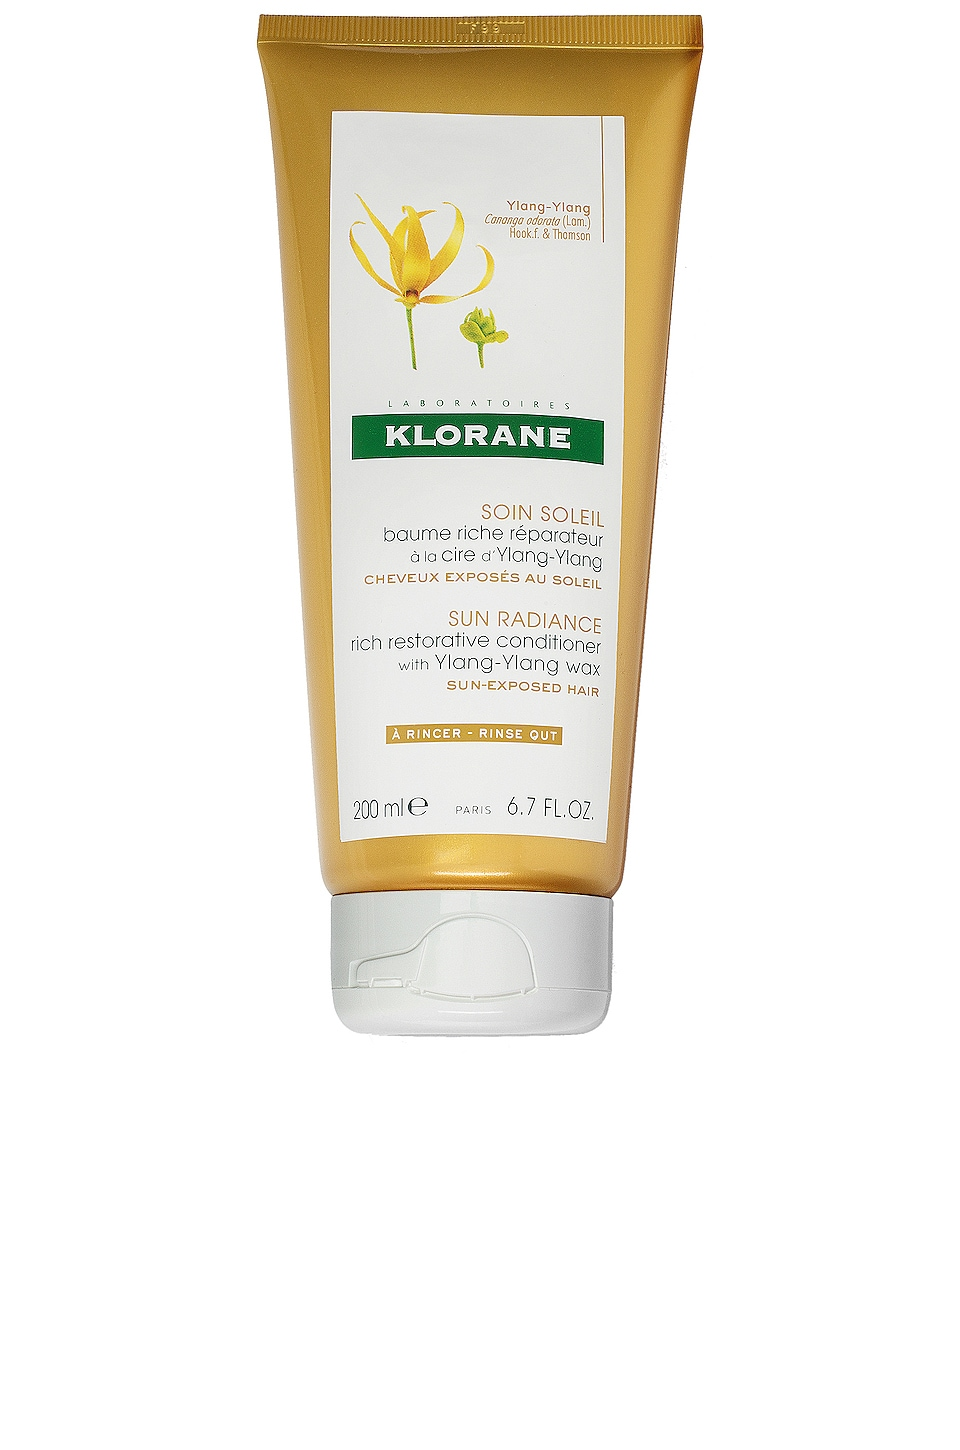 Klorane Restorative Conditioner with Ylang-Ylang